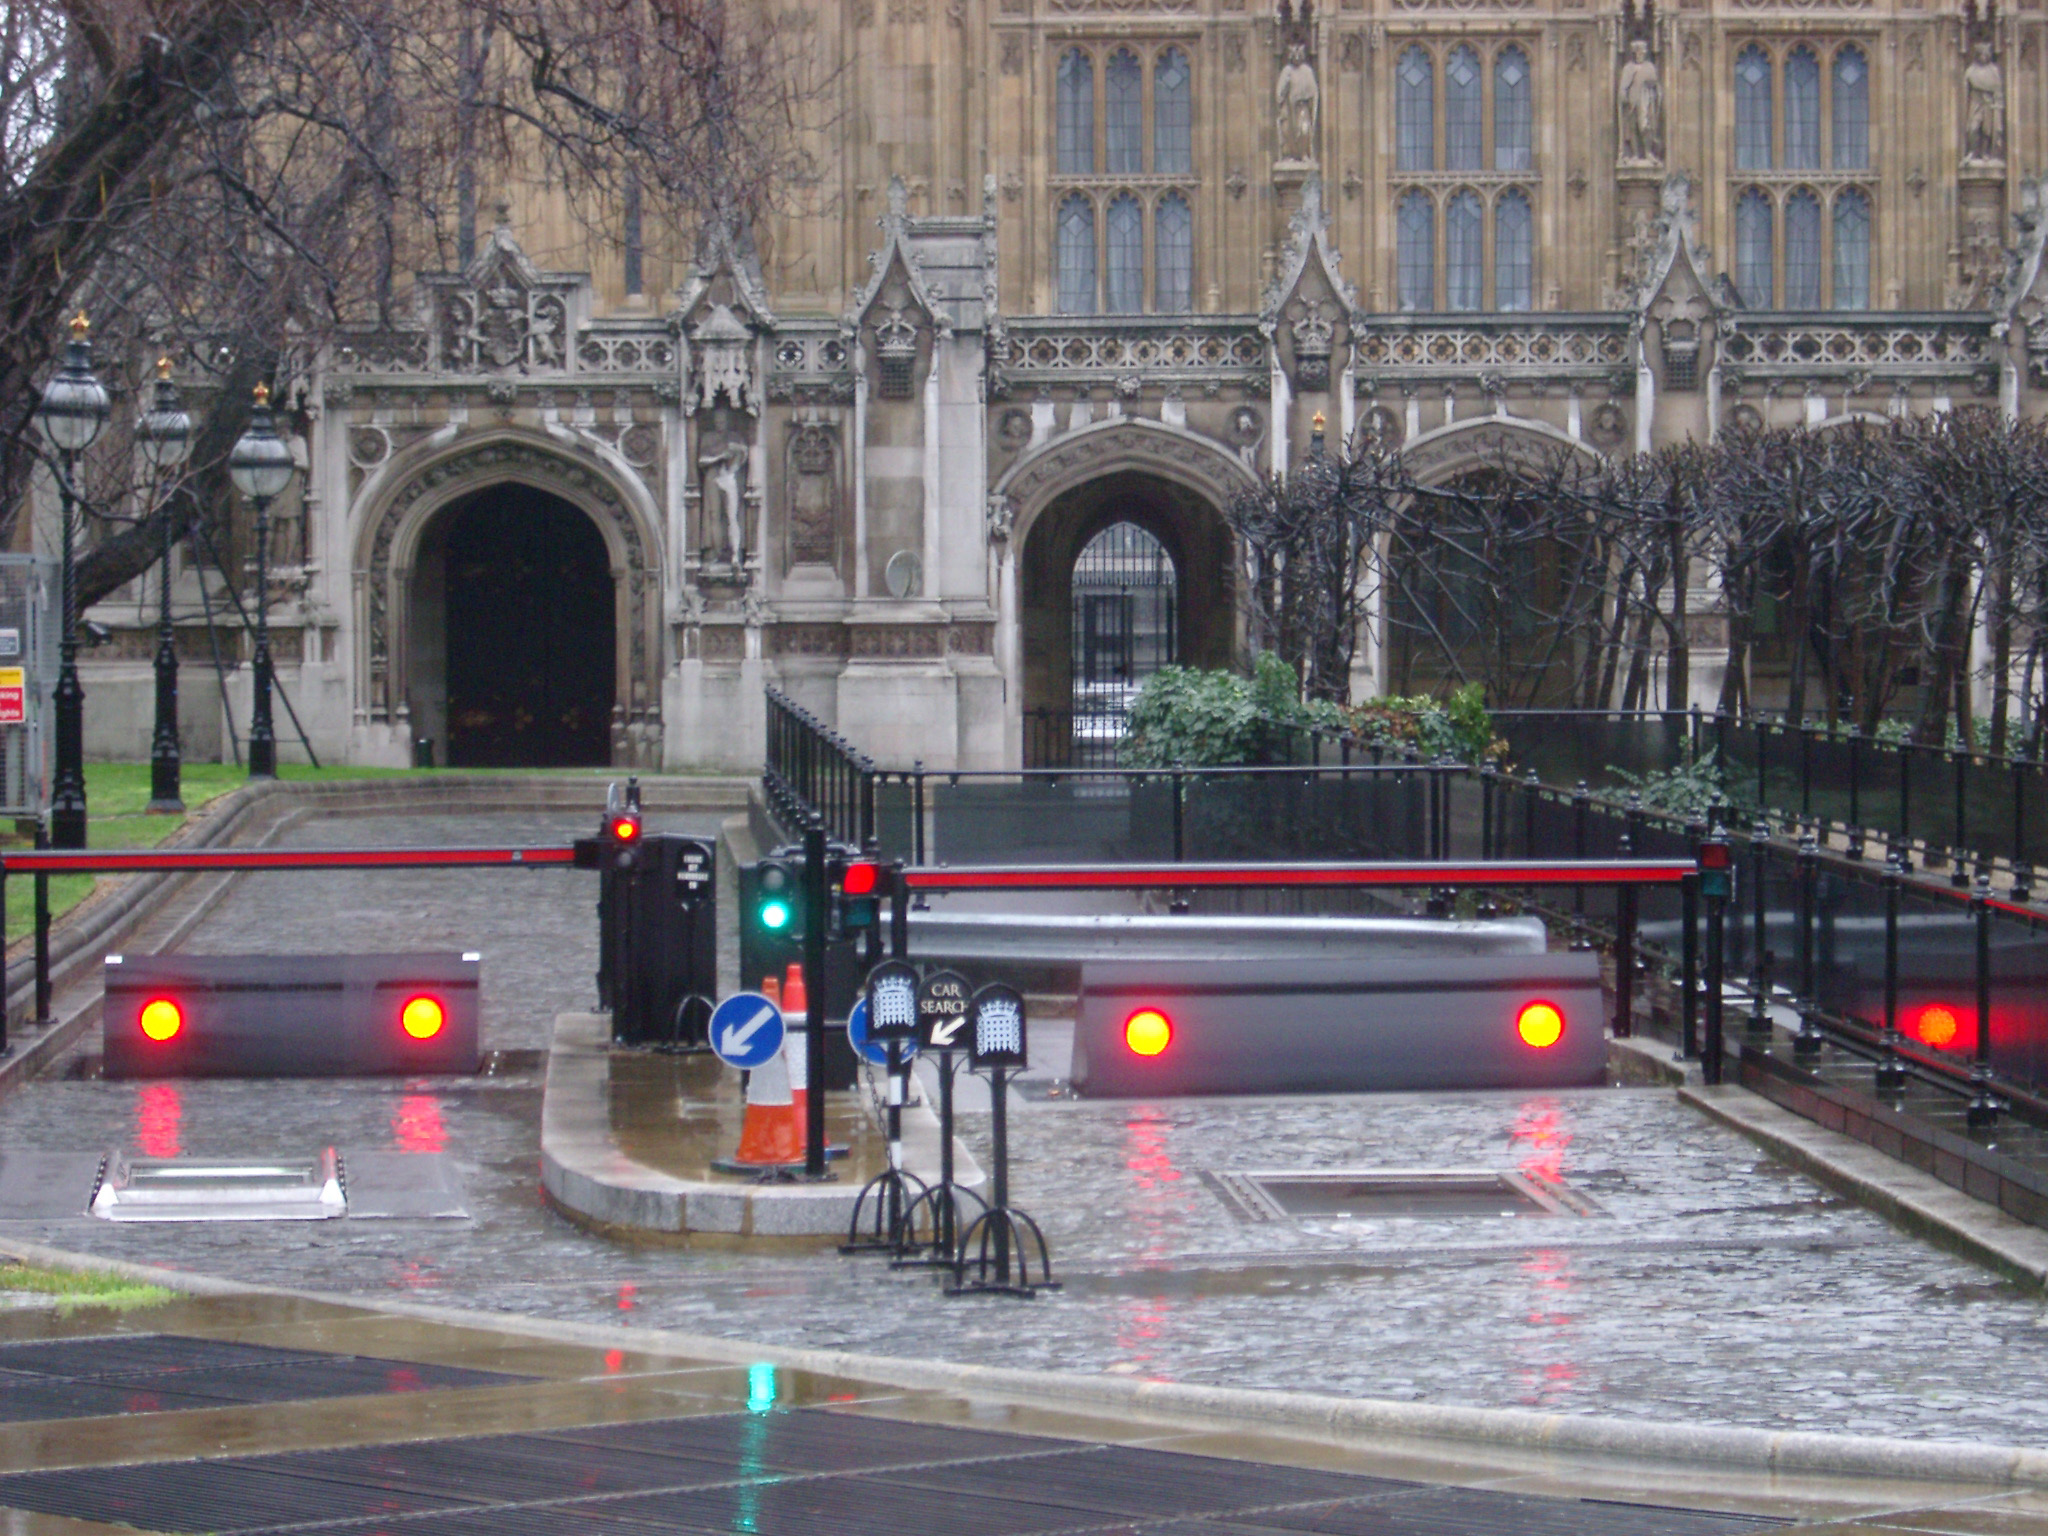 Security barricades and gate outside the Houses of Parliament in London